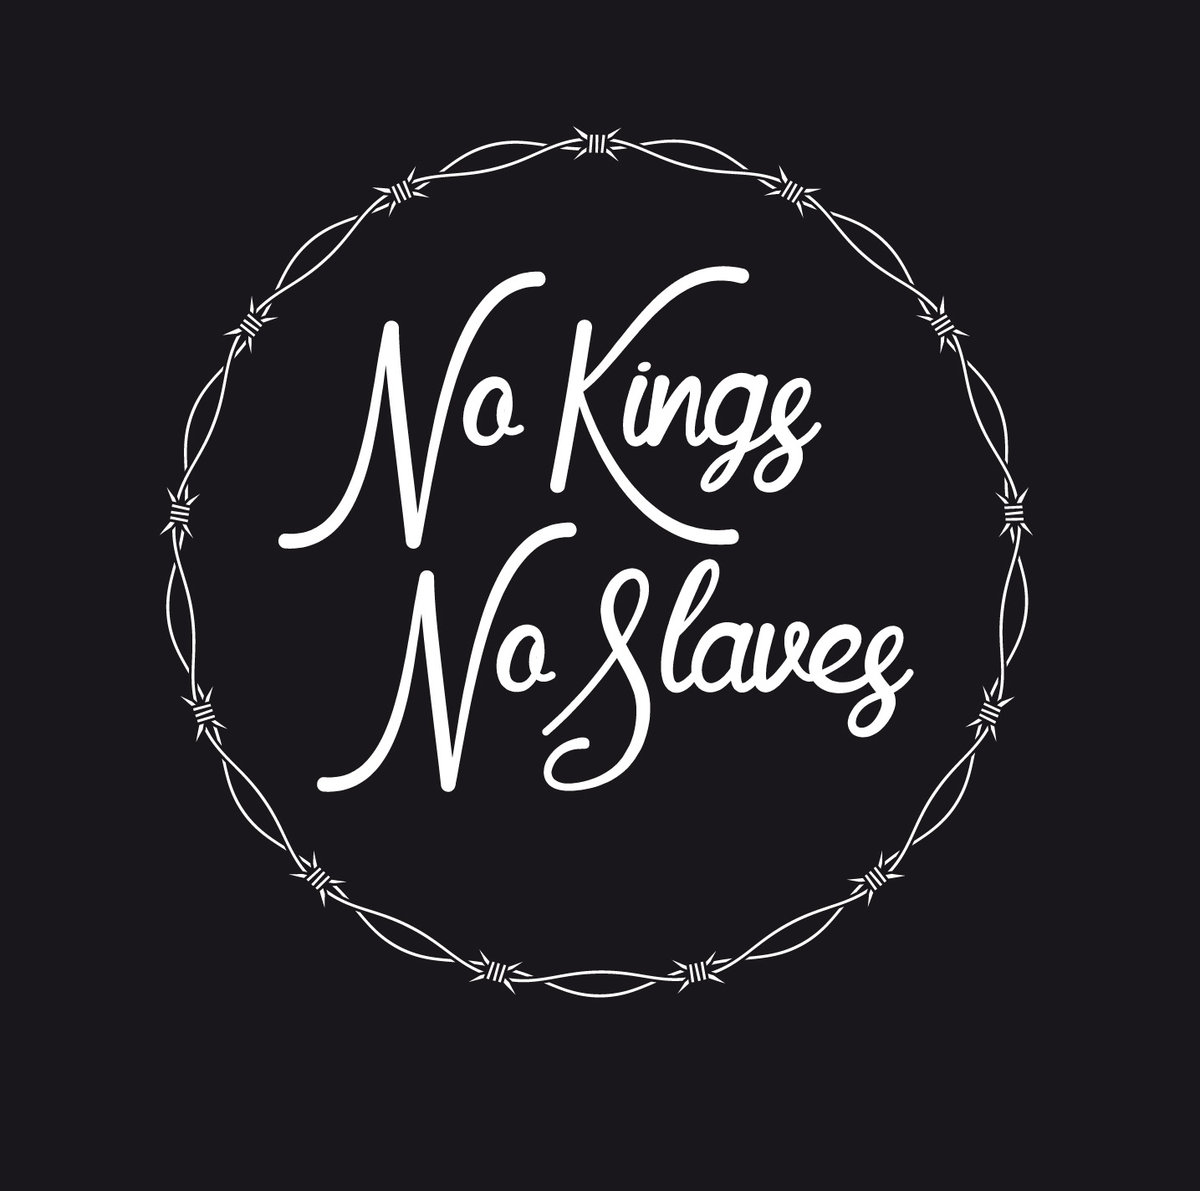 No Kings No Slaves